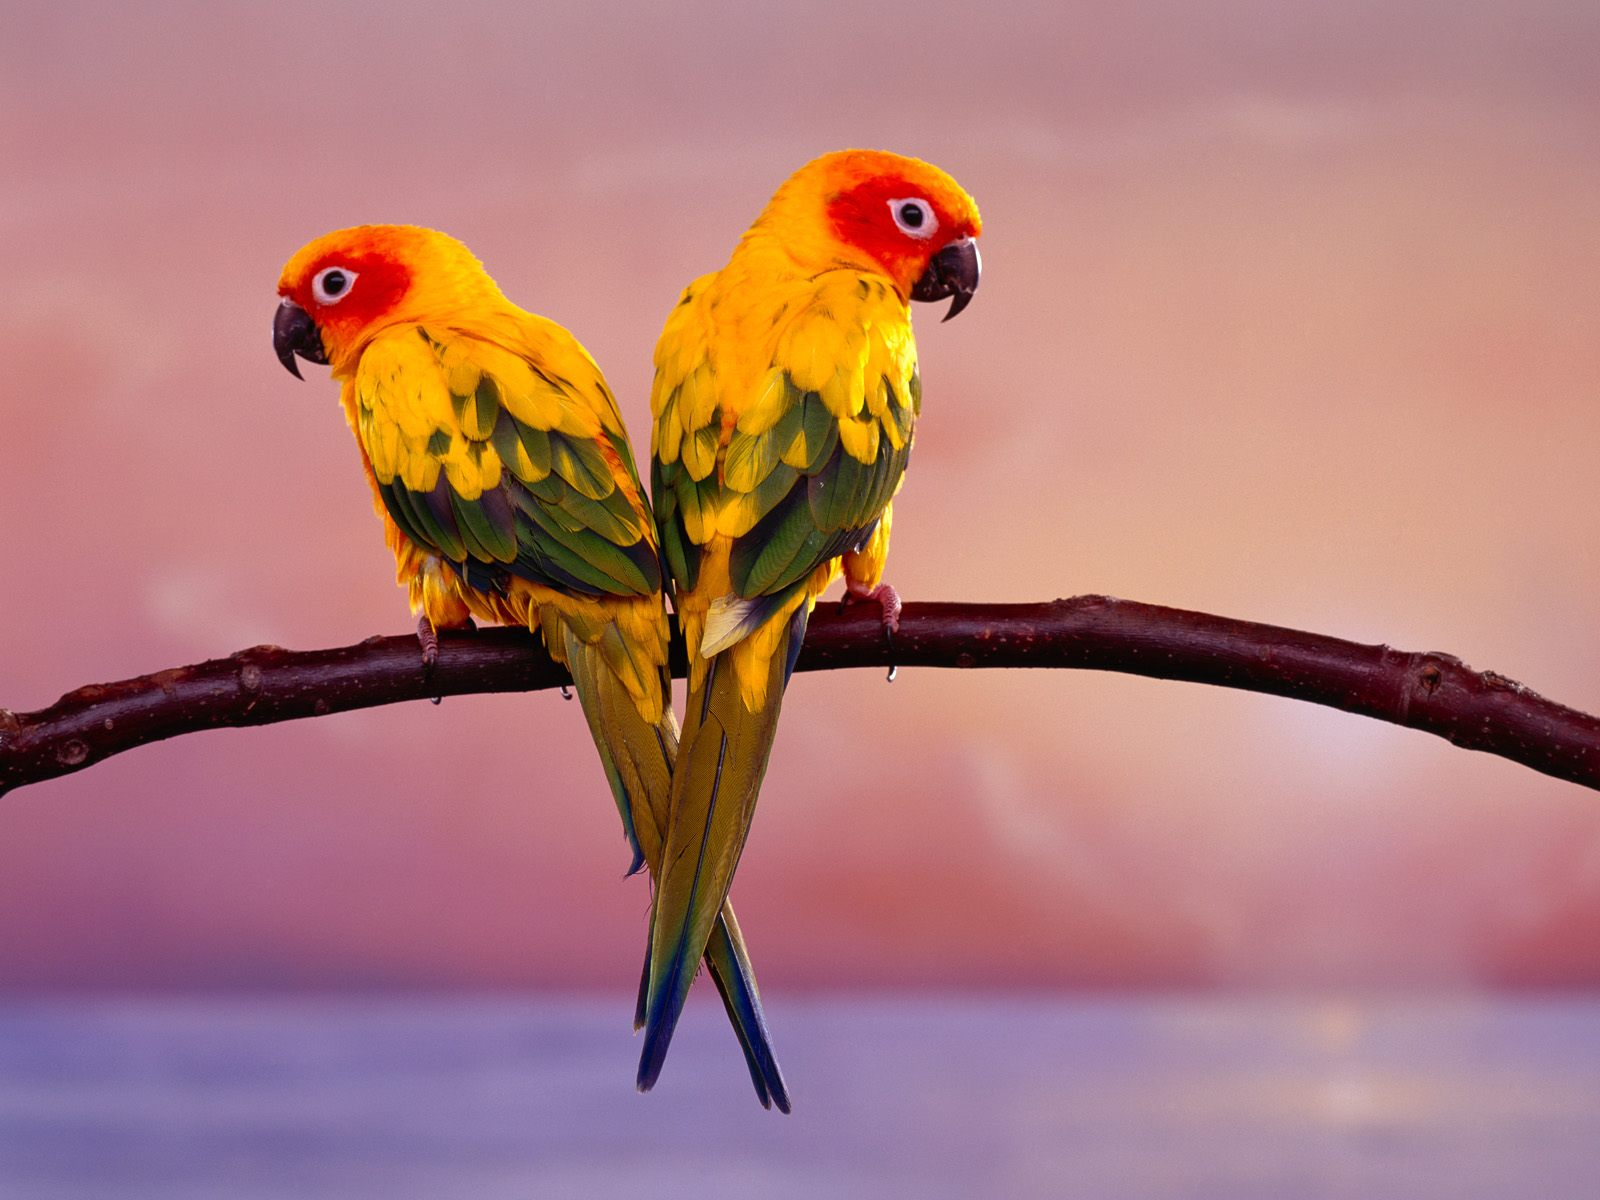 Wallpapers Love Birds: Life Is Better With A Cute Outfit: Love Birds Wallpapers